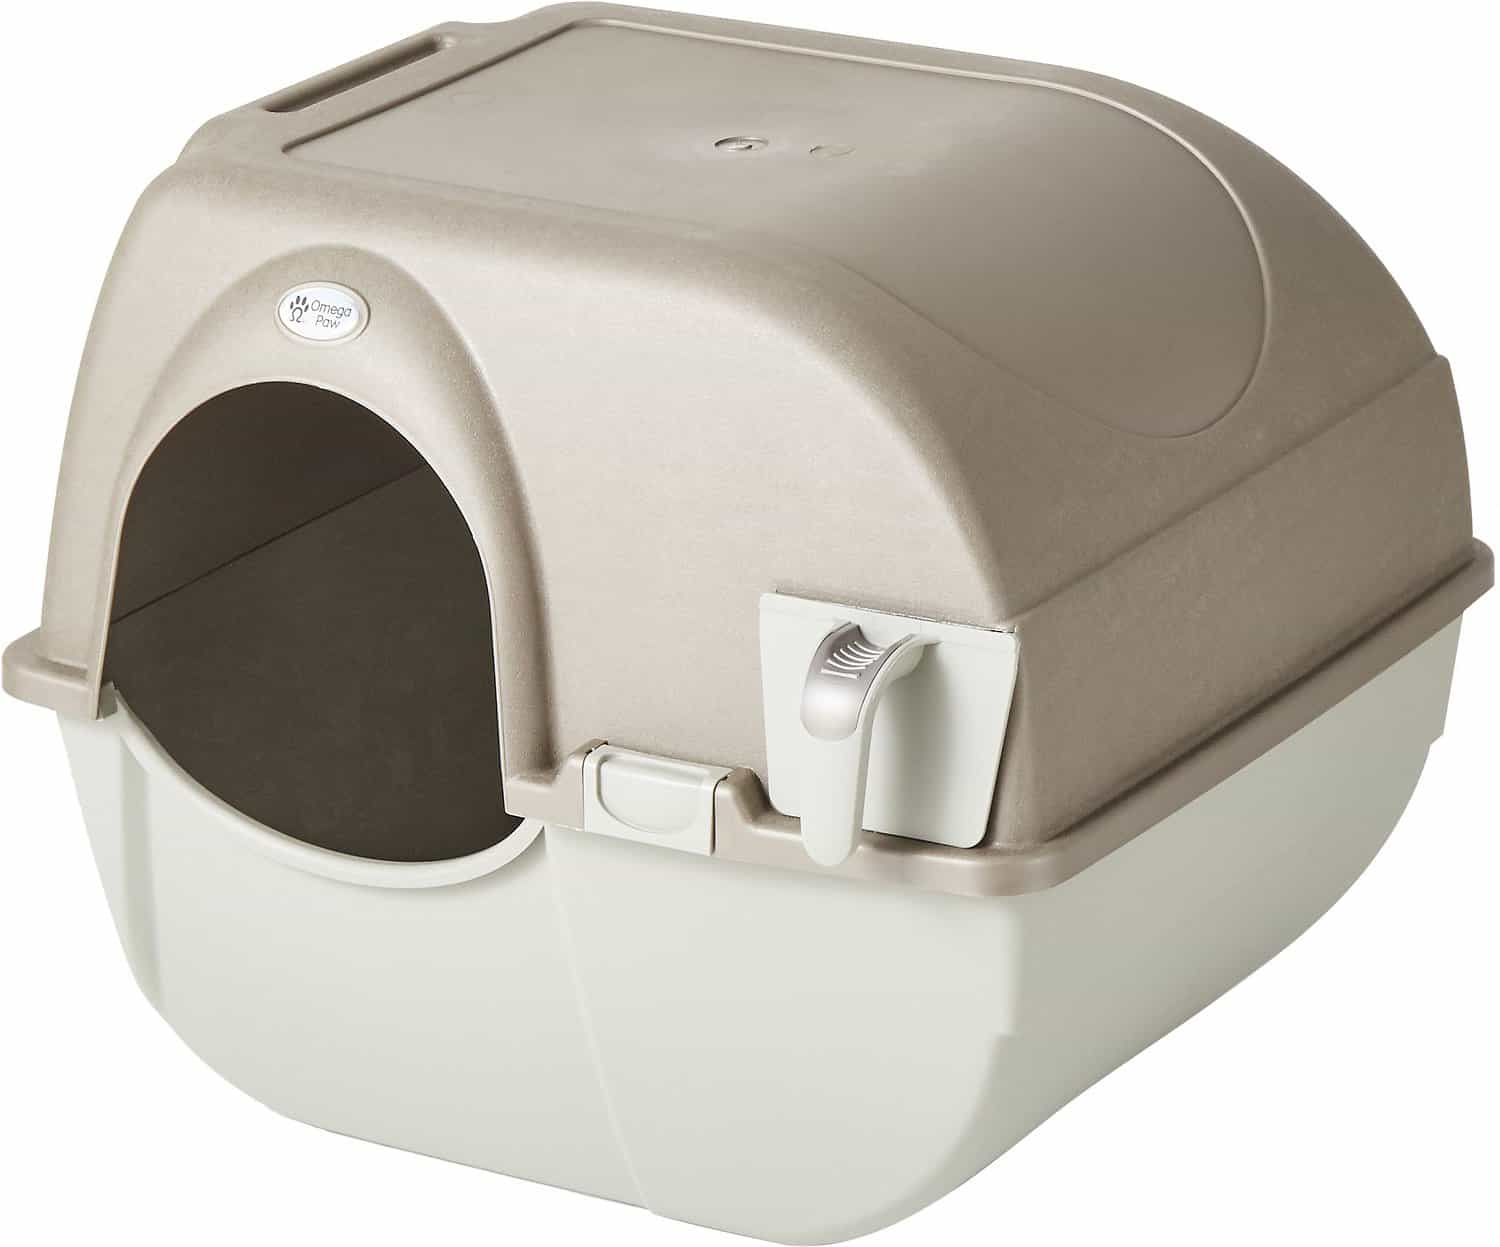 Top 7 Best Automatic Litter Box For Self Cleaning [2020 Update] 7